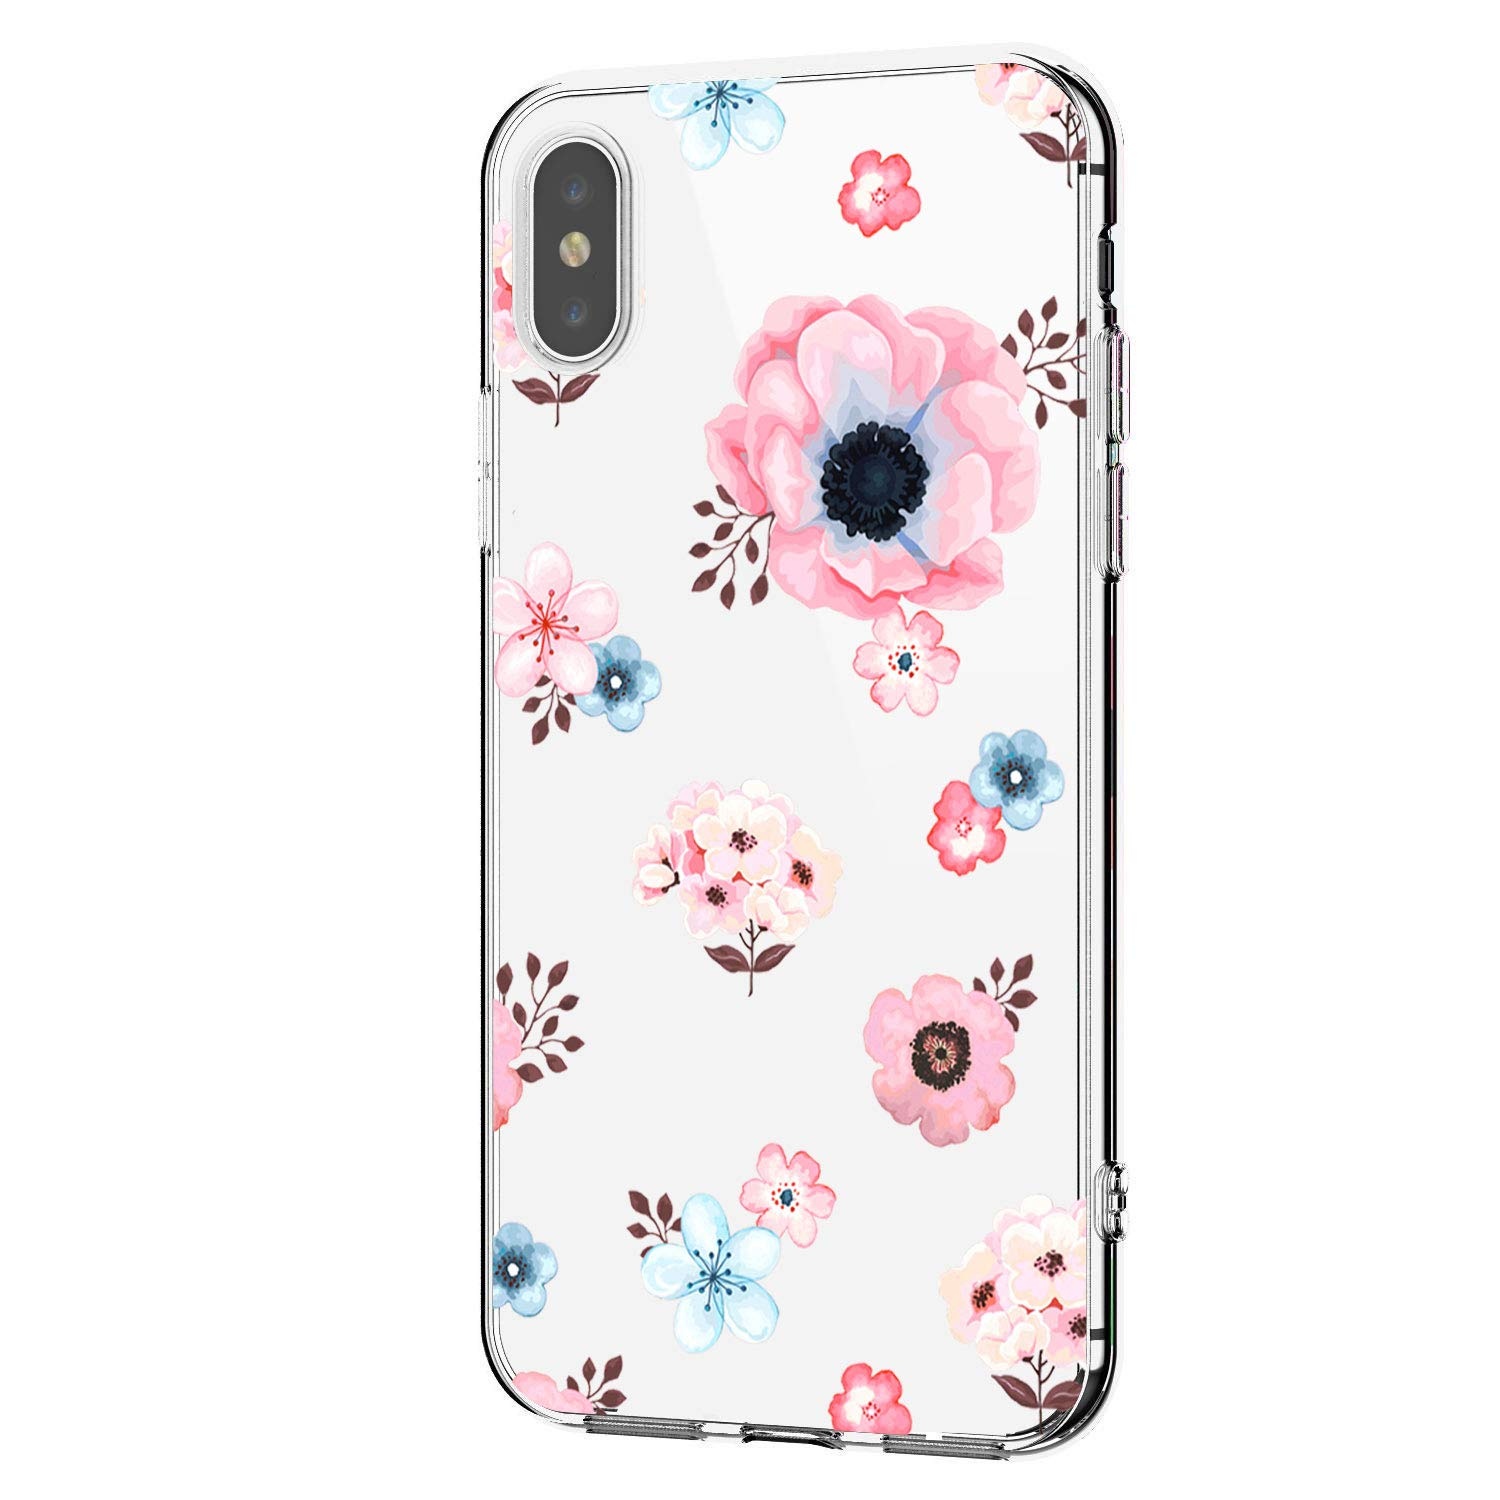 Riyeri Hülle Compatible with Apple iPhone Xr Hülle Cover iPhone Xs Handyhülle Schutzhülle Transparent Blume Muster Weich TPU Silikon Case für Apple iPhone Xs Max Mobile Phone